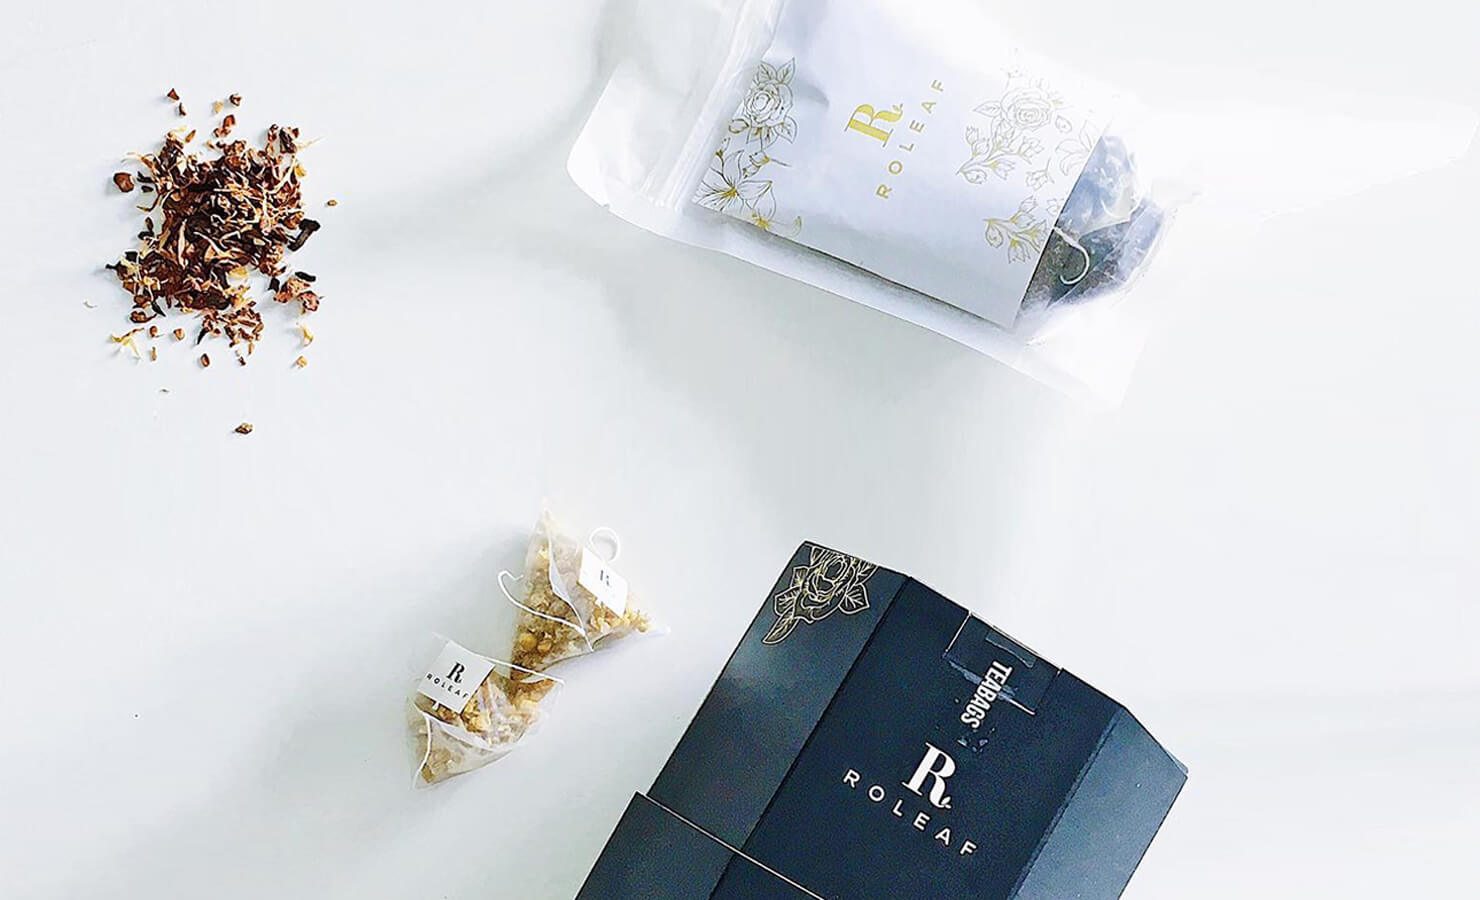 bloomthis-mid-autumn-festival-gift-guide-2021-04-roleaf-tea